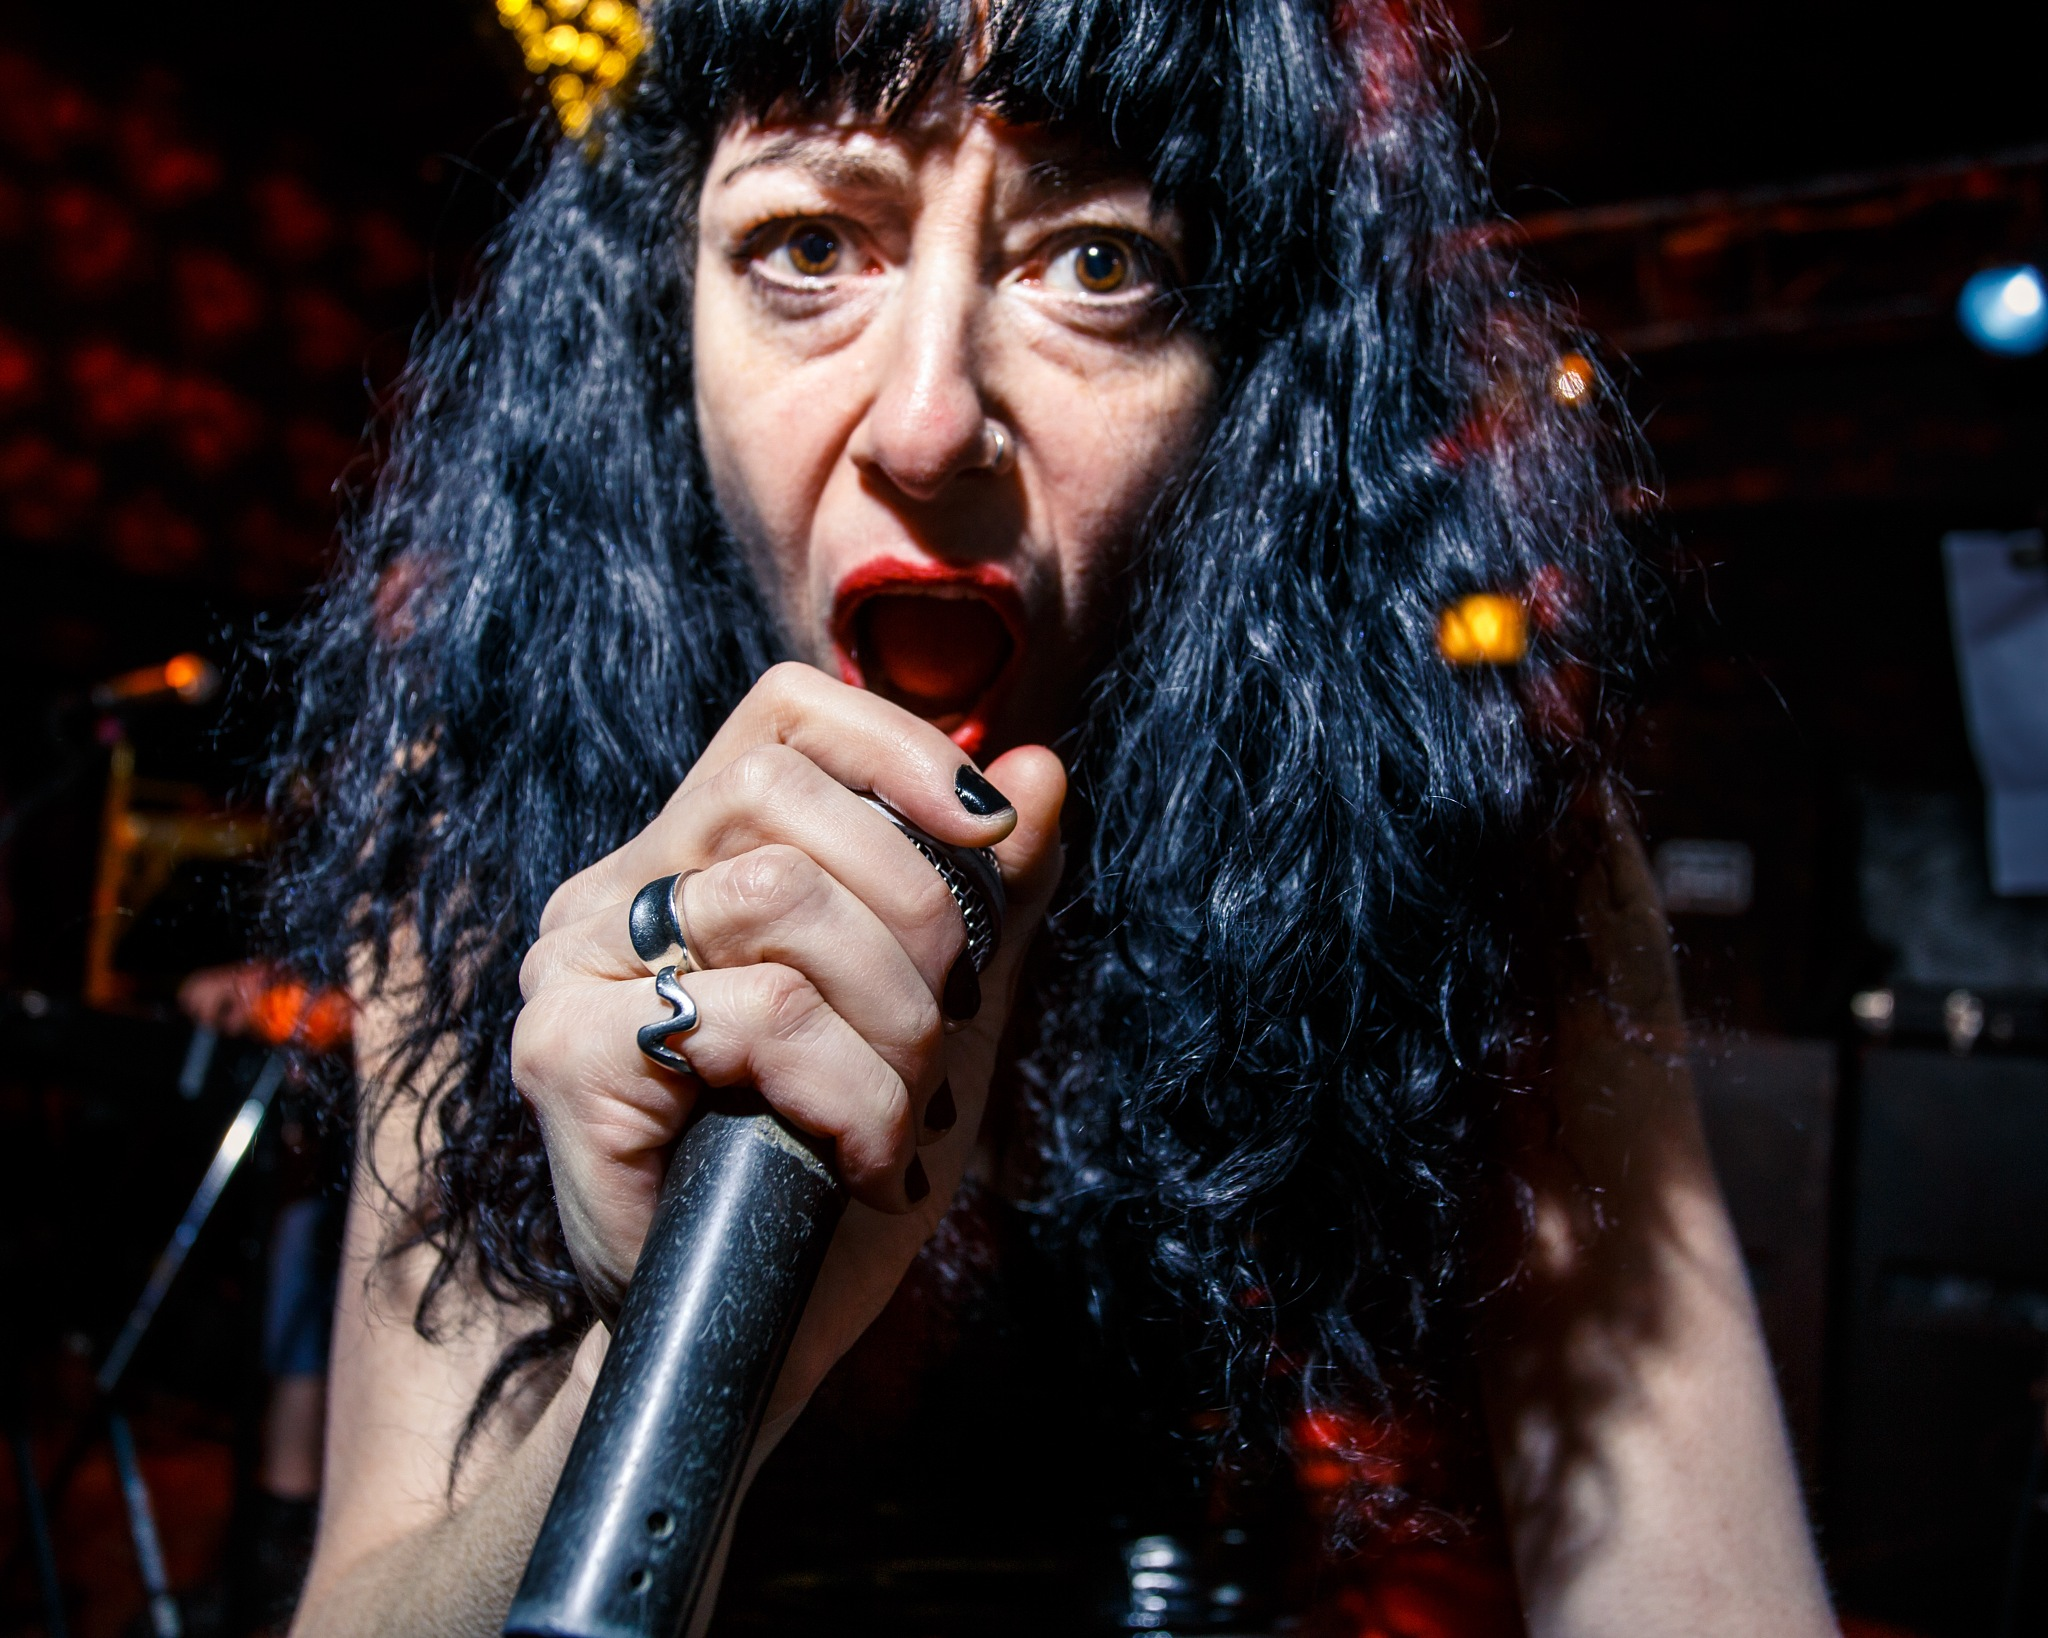 traci weingardt / hotlips messiah / chicago / mar 16 2018 by john mourlas